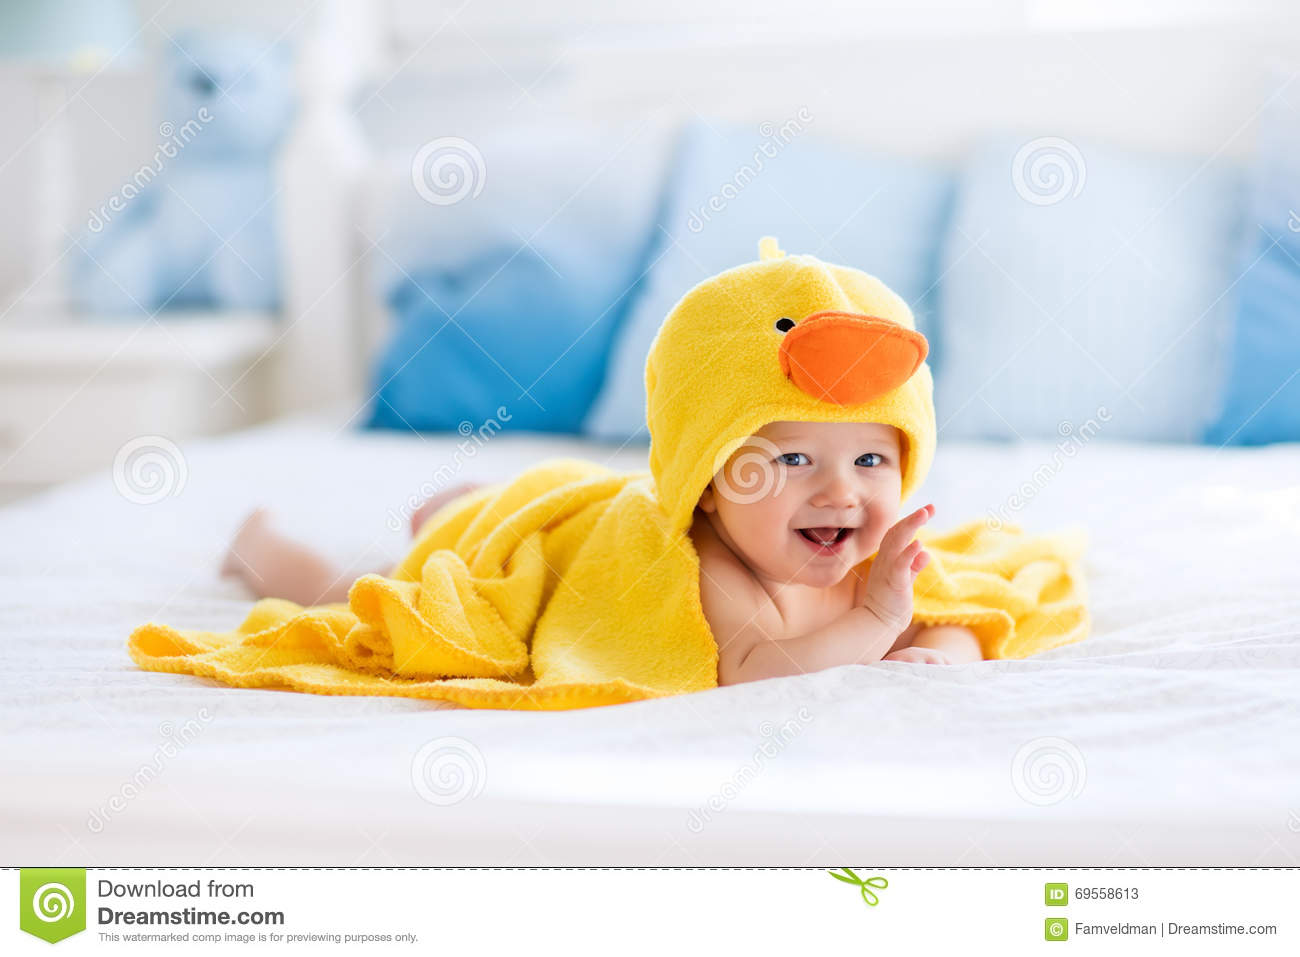 Cute Baby After Bath In Yellow Duck Towel Stock Image ...